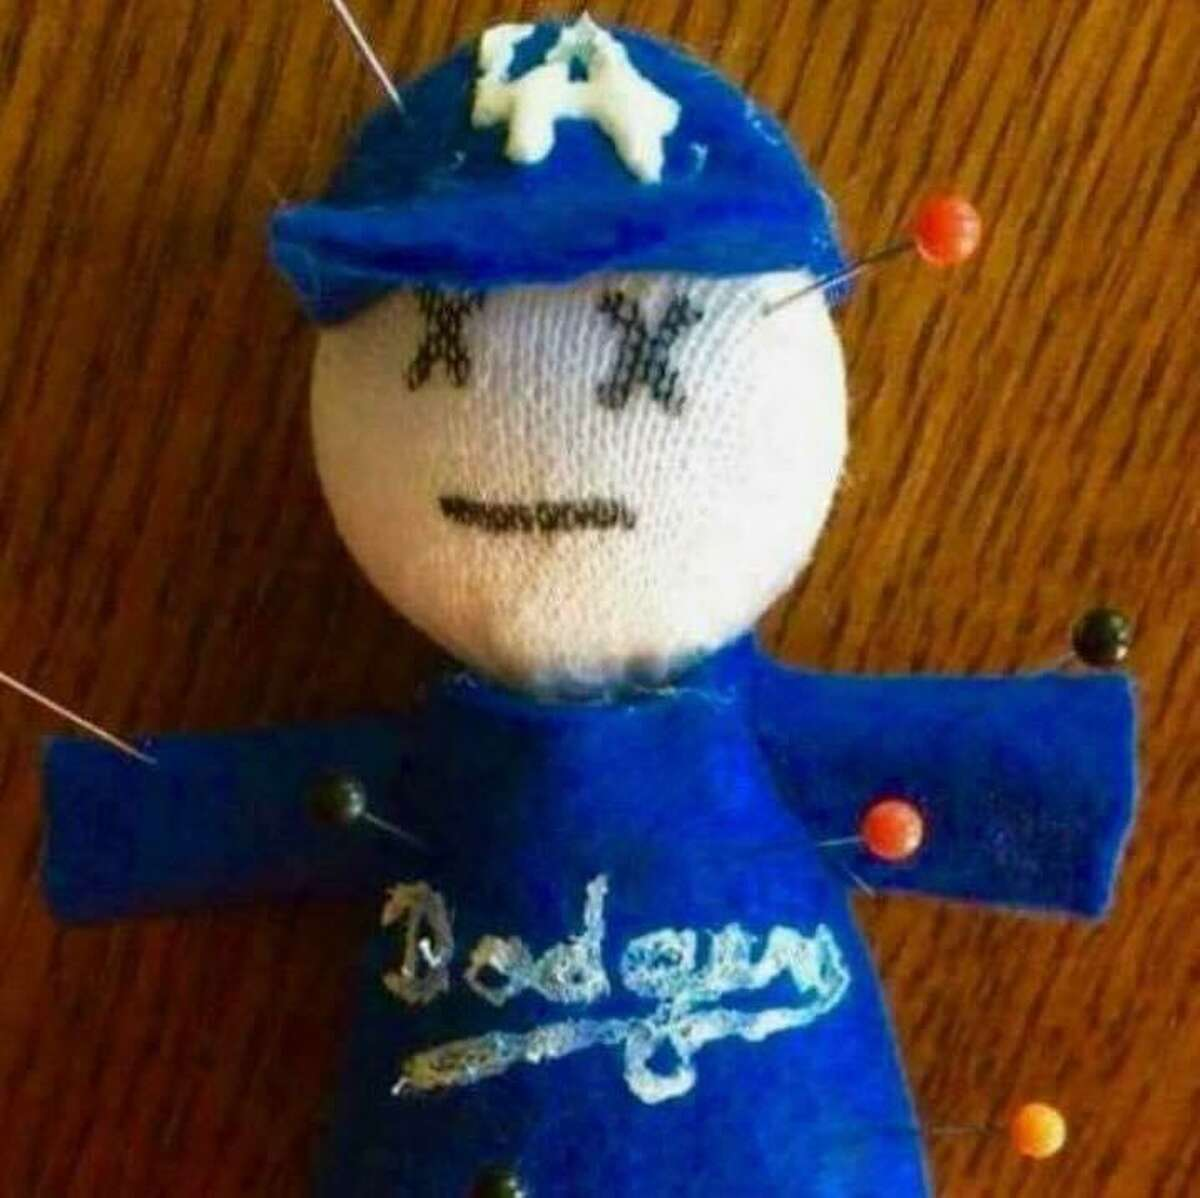 A voodoo doll that is one of many good-luck charms owned by Carol Dahmen-Eckery to help the San Francisco Giants beat the Los Angeles Dodgers.